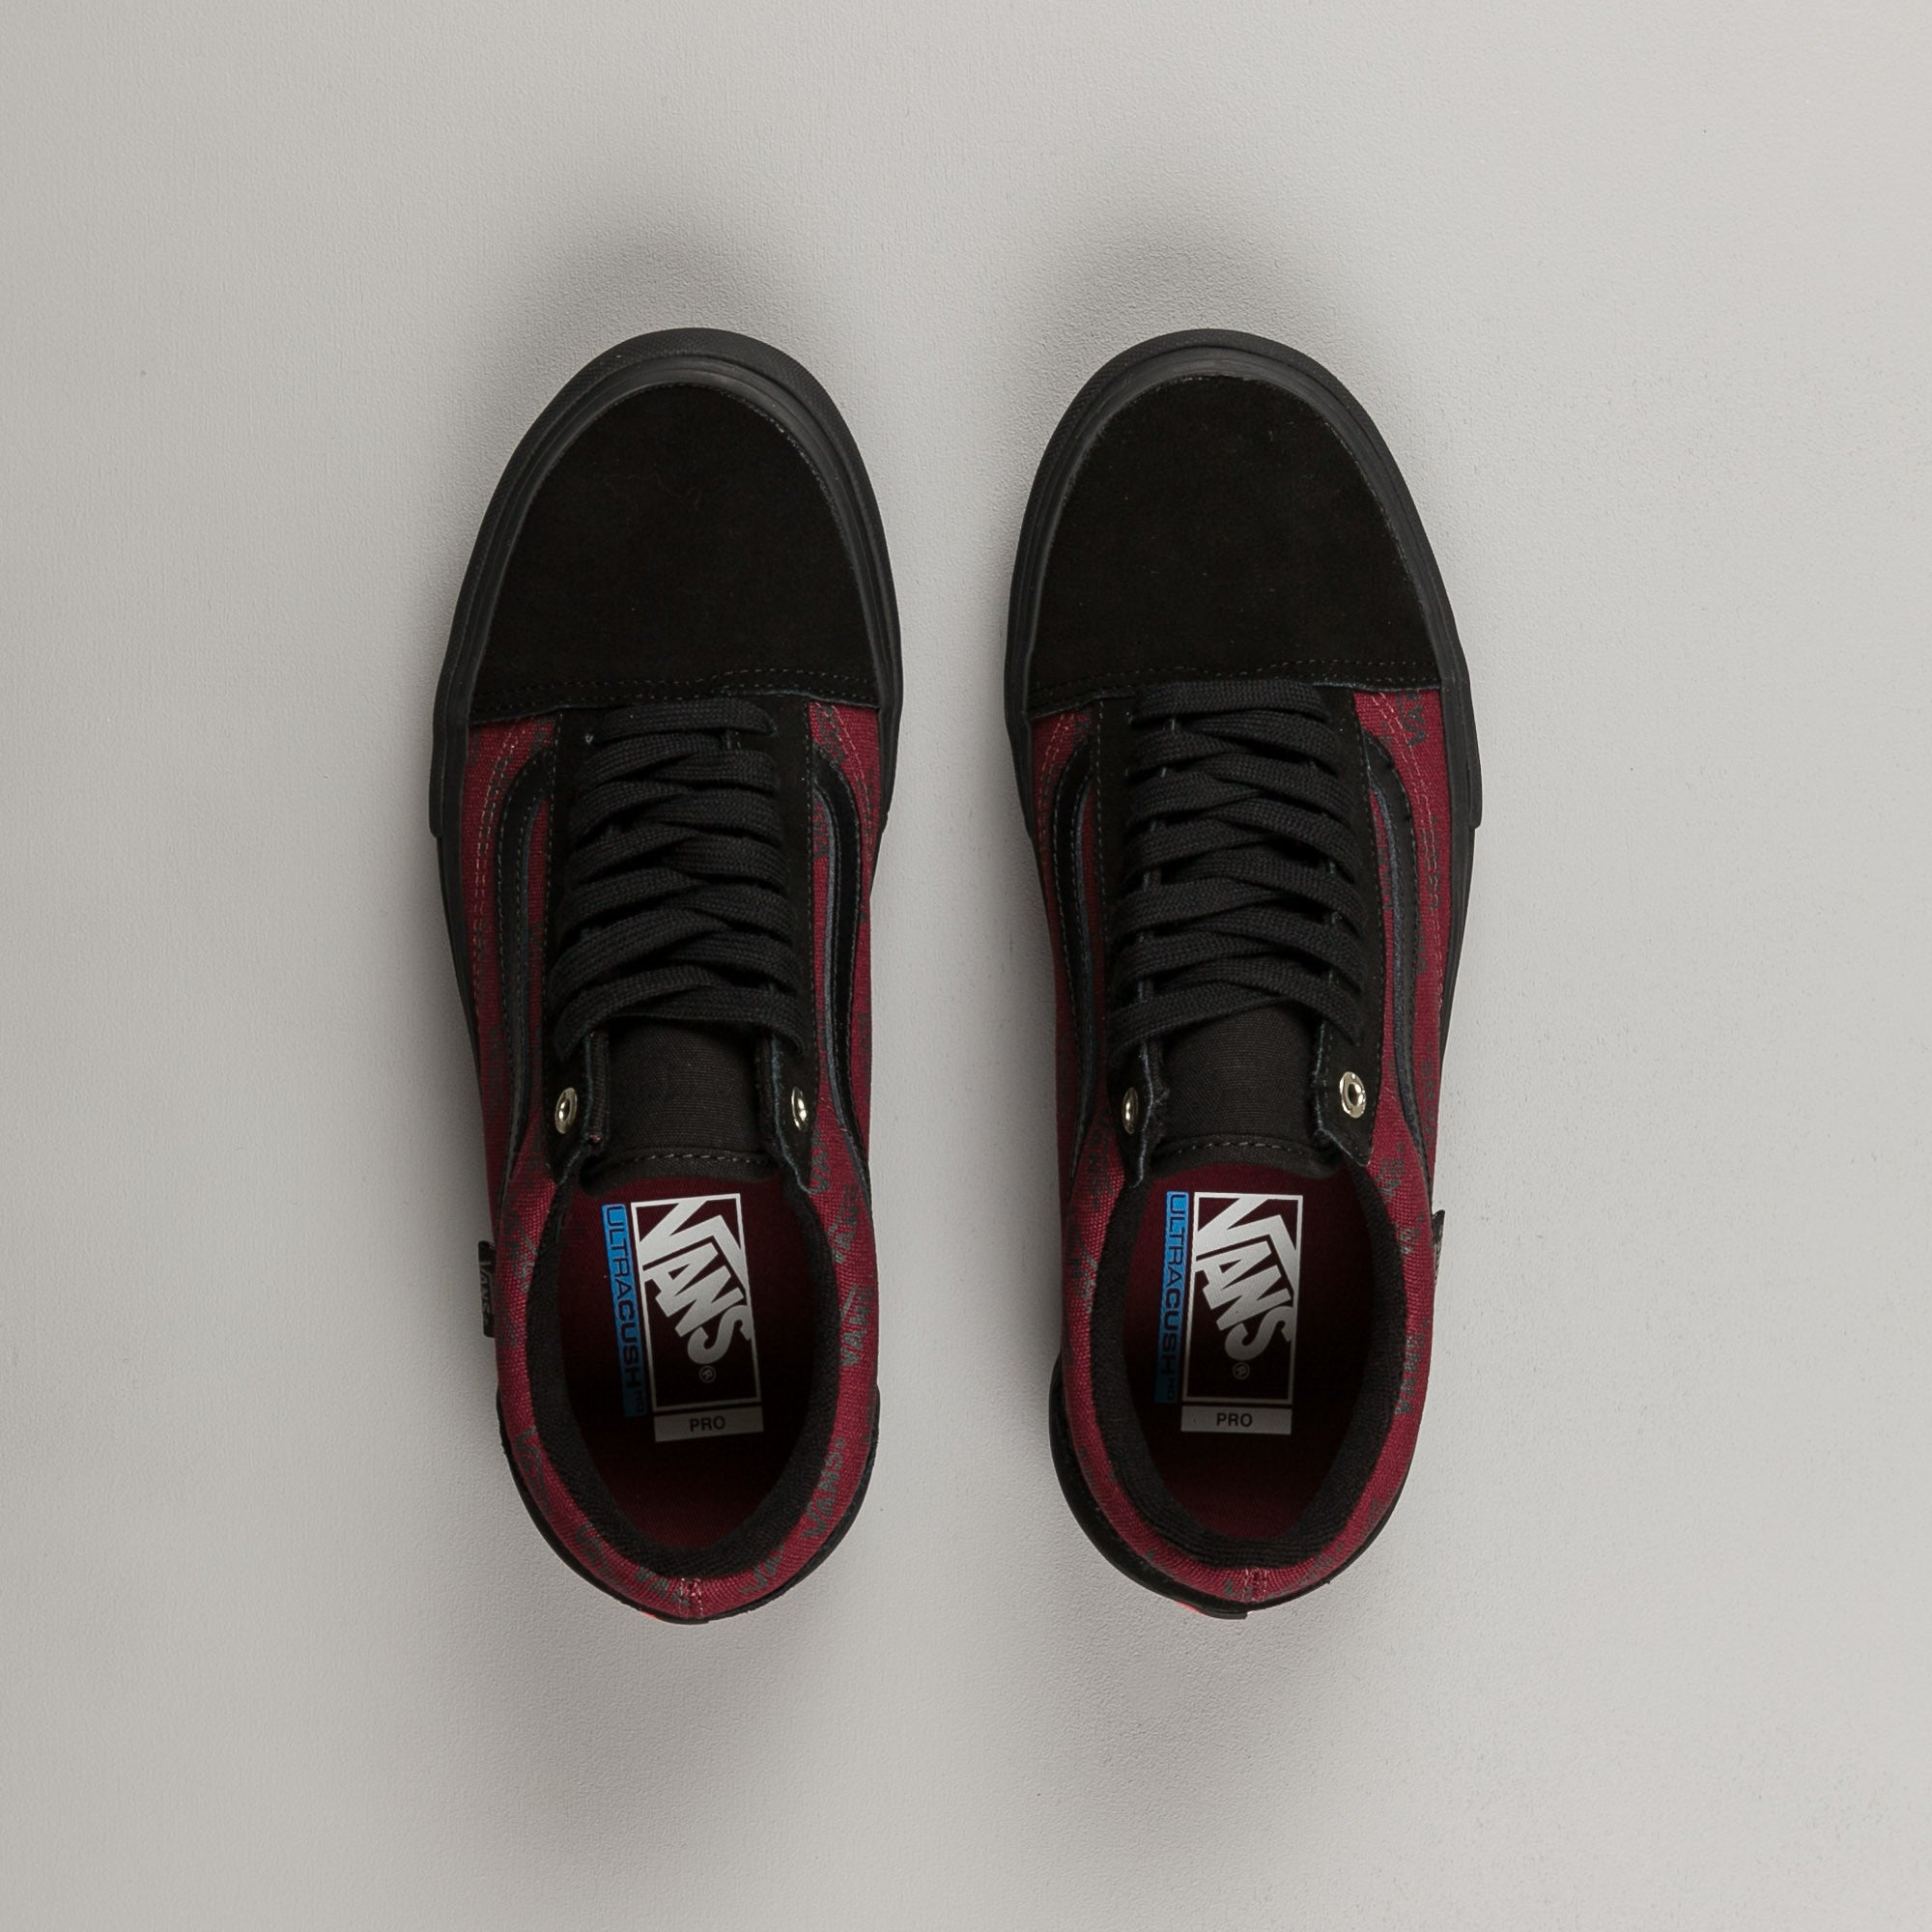 b443e3ee025159 Vans Old Skool Pro Shoes - Port Royale   Black ...